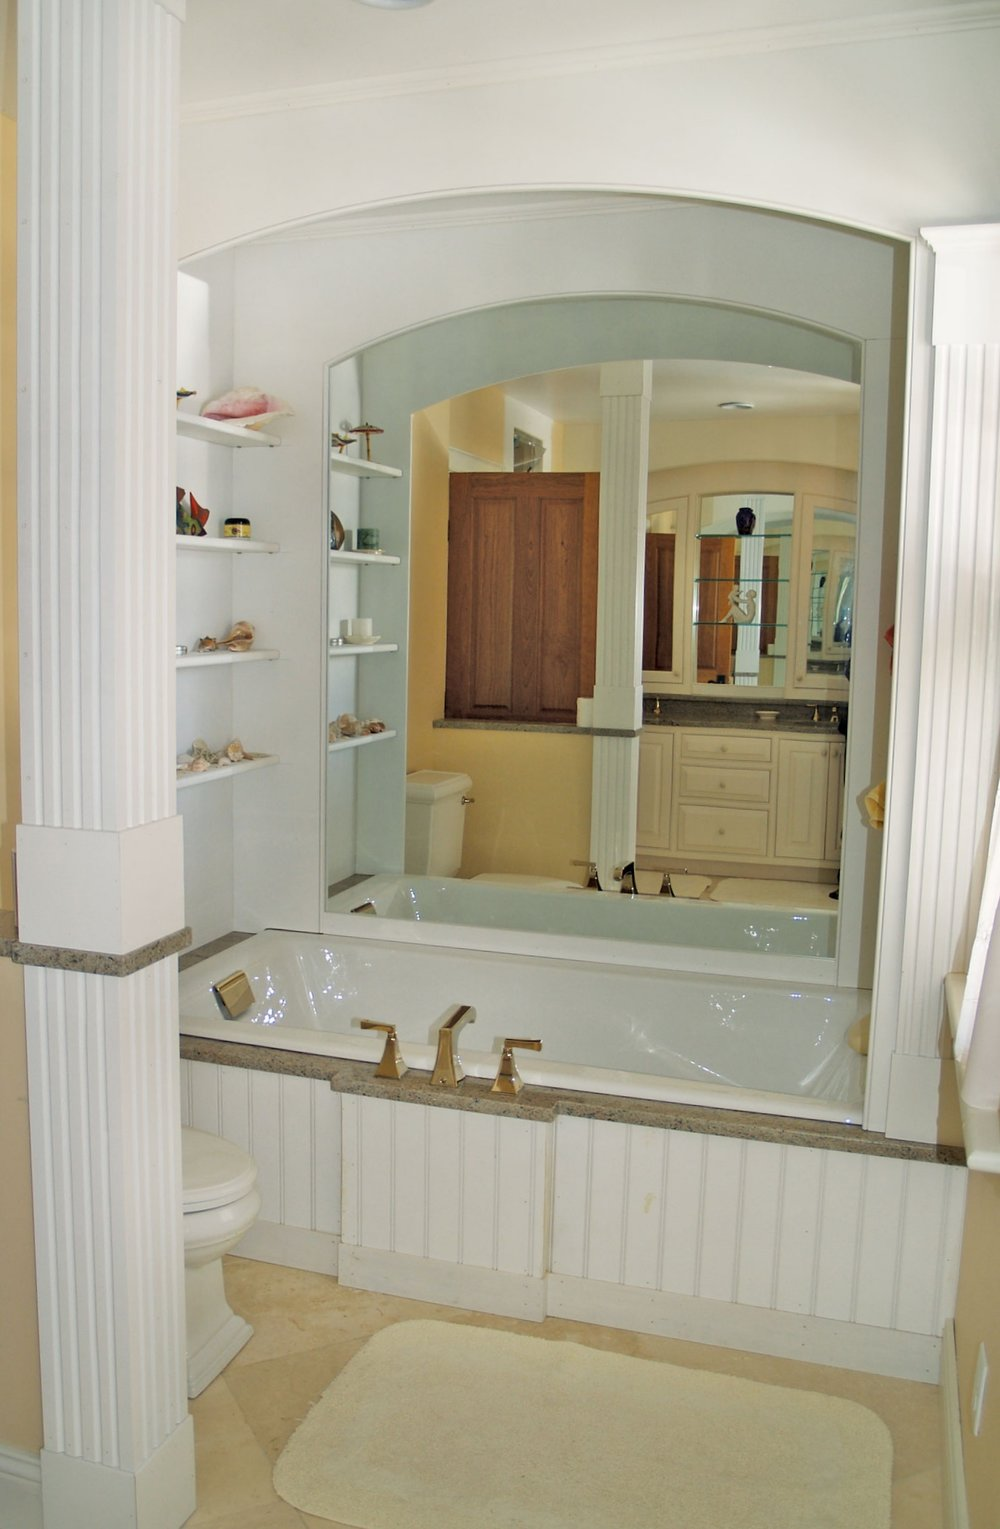 Bathroom-Arched-Mirror-by-Tub.jpg